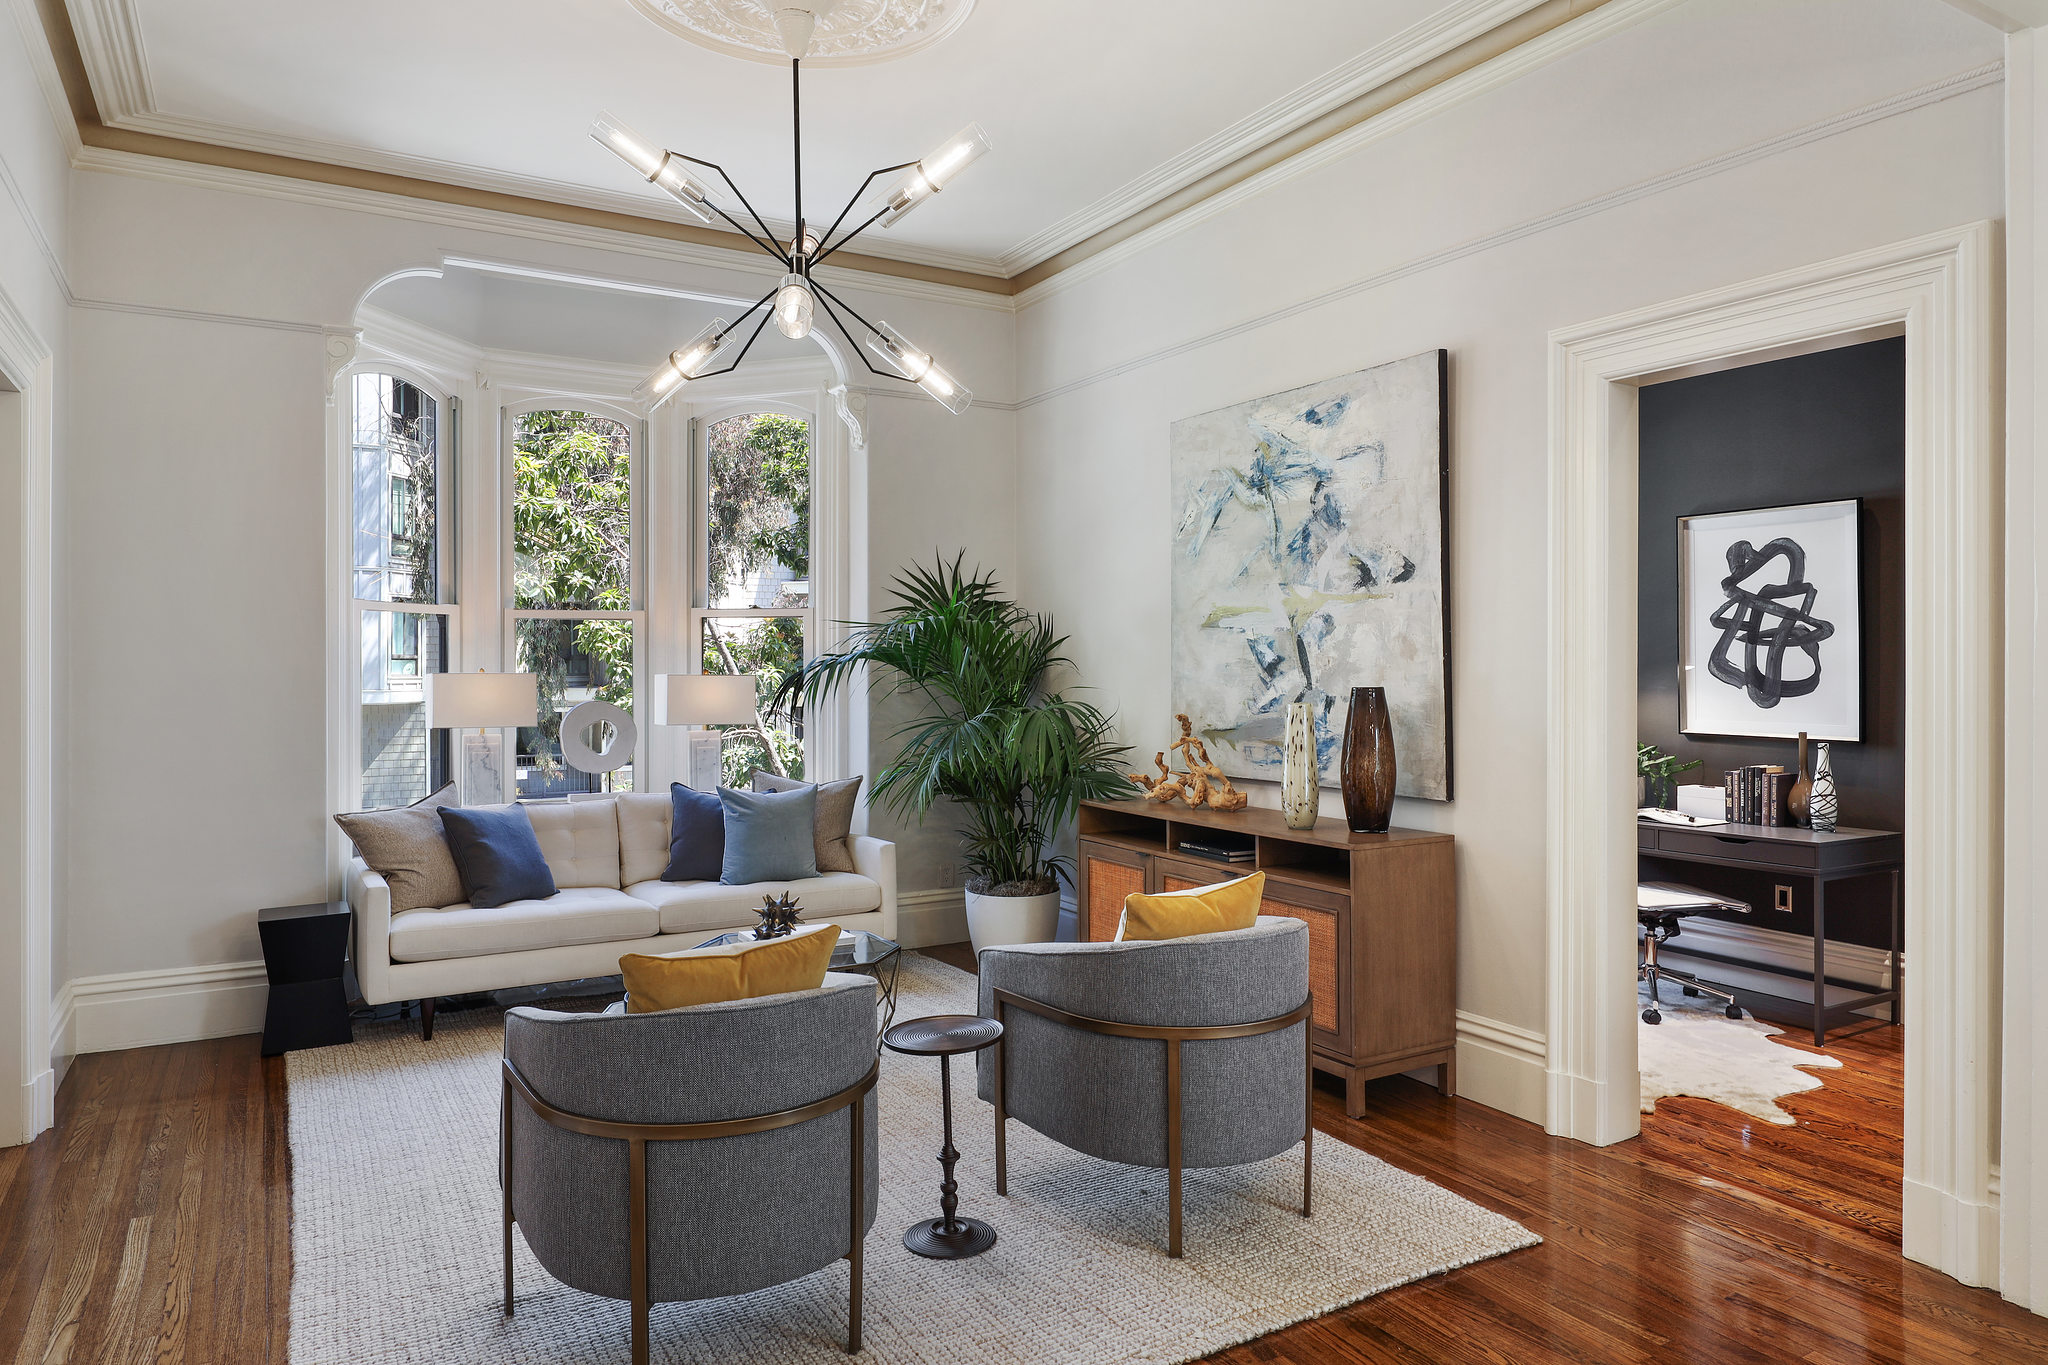 Gorgeous Victorian window seats made modern by light fixtures and furnishings.